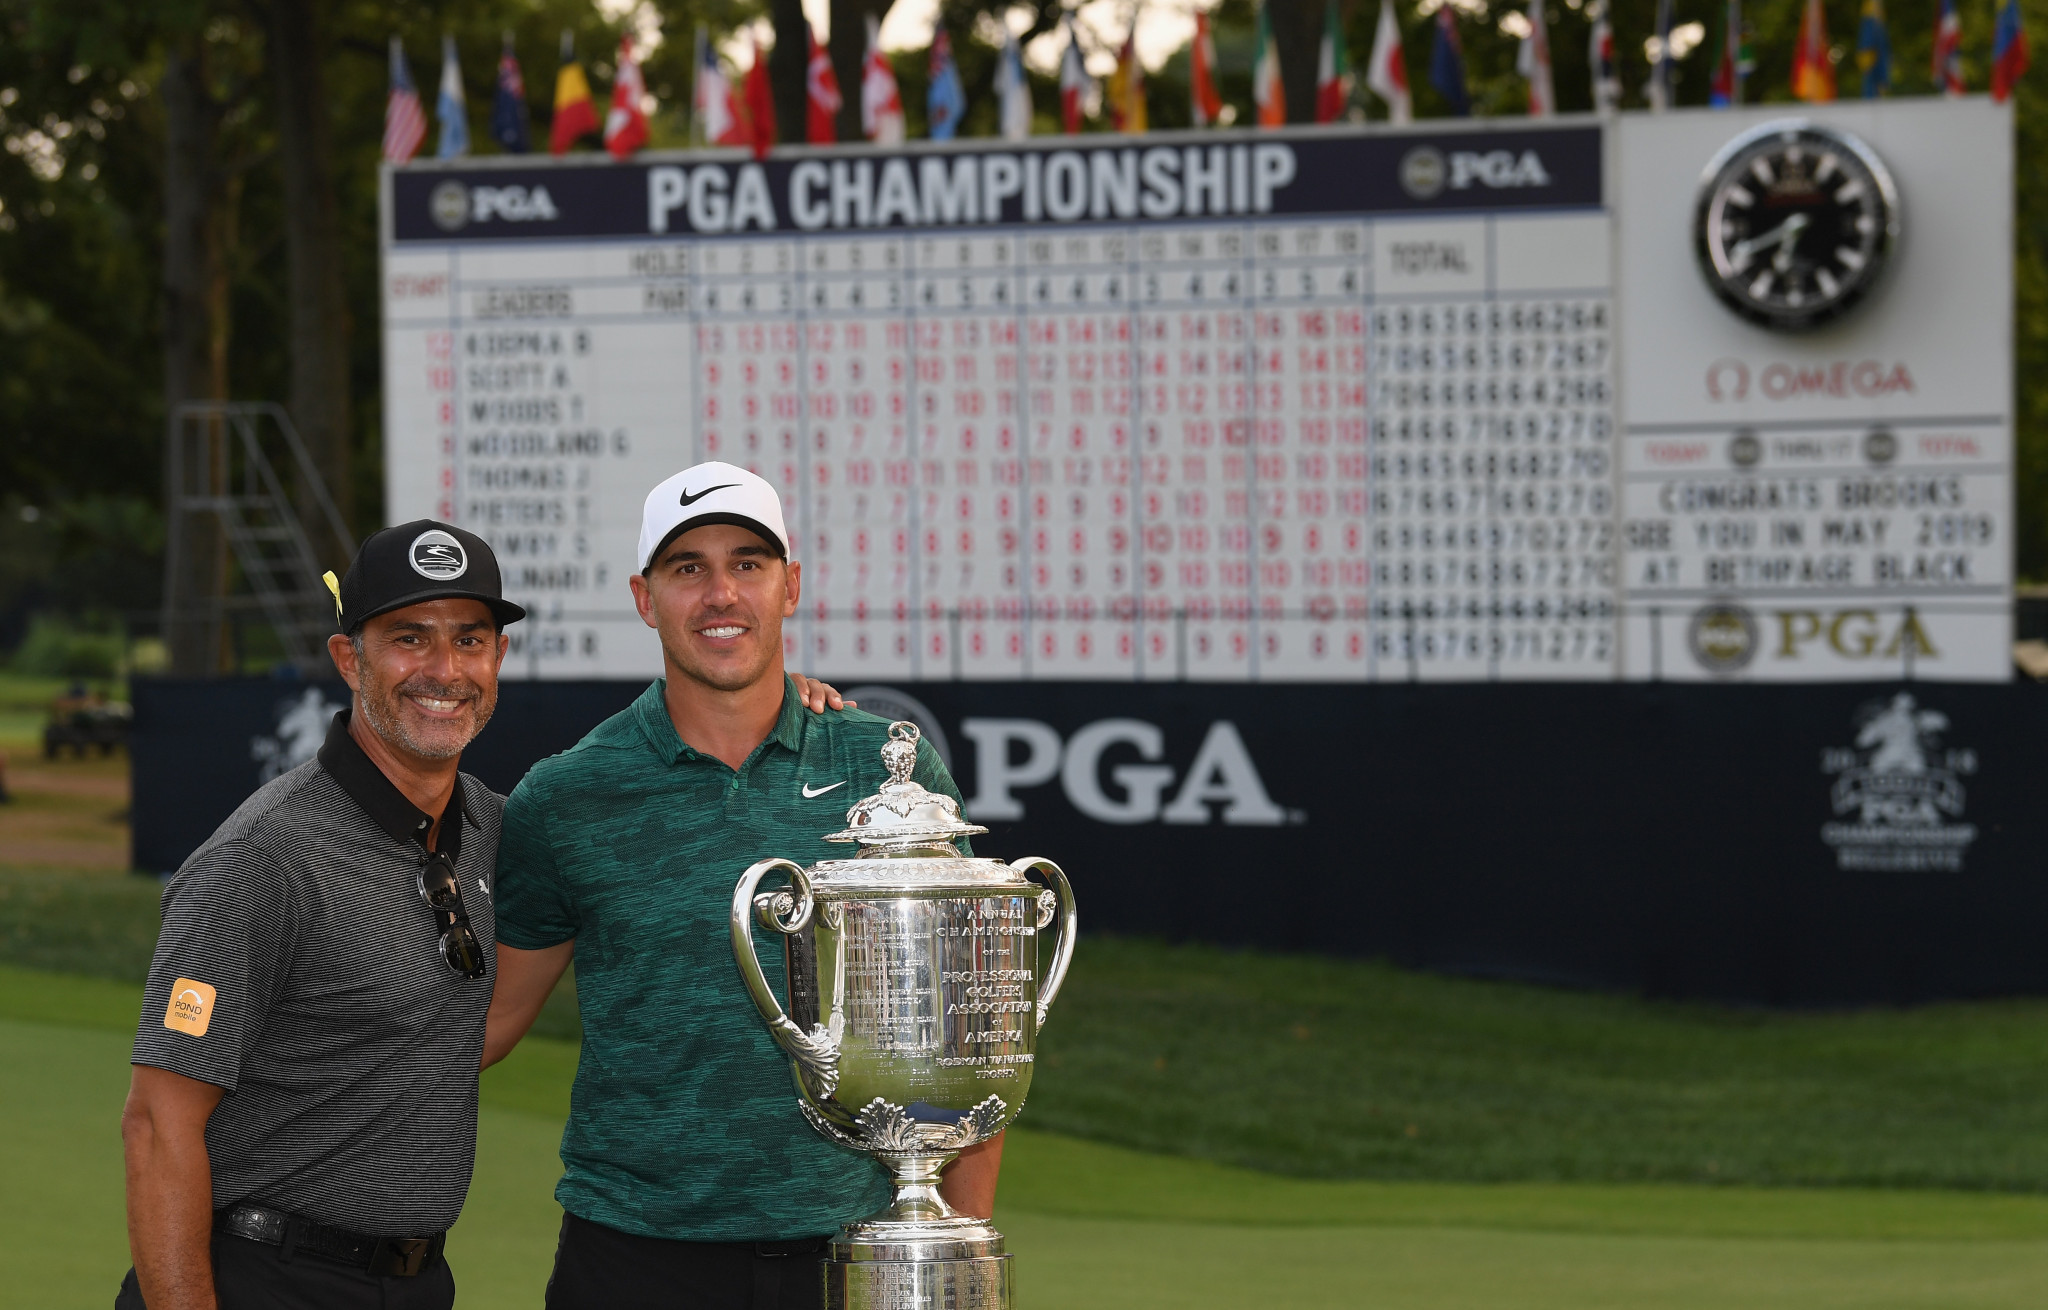 World number four Brooks Koepka has won the US PGA Championship at Bellerive to claim his third major title in 14 months ©Getty Images